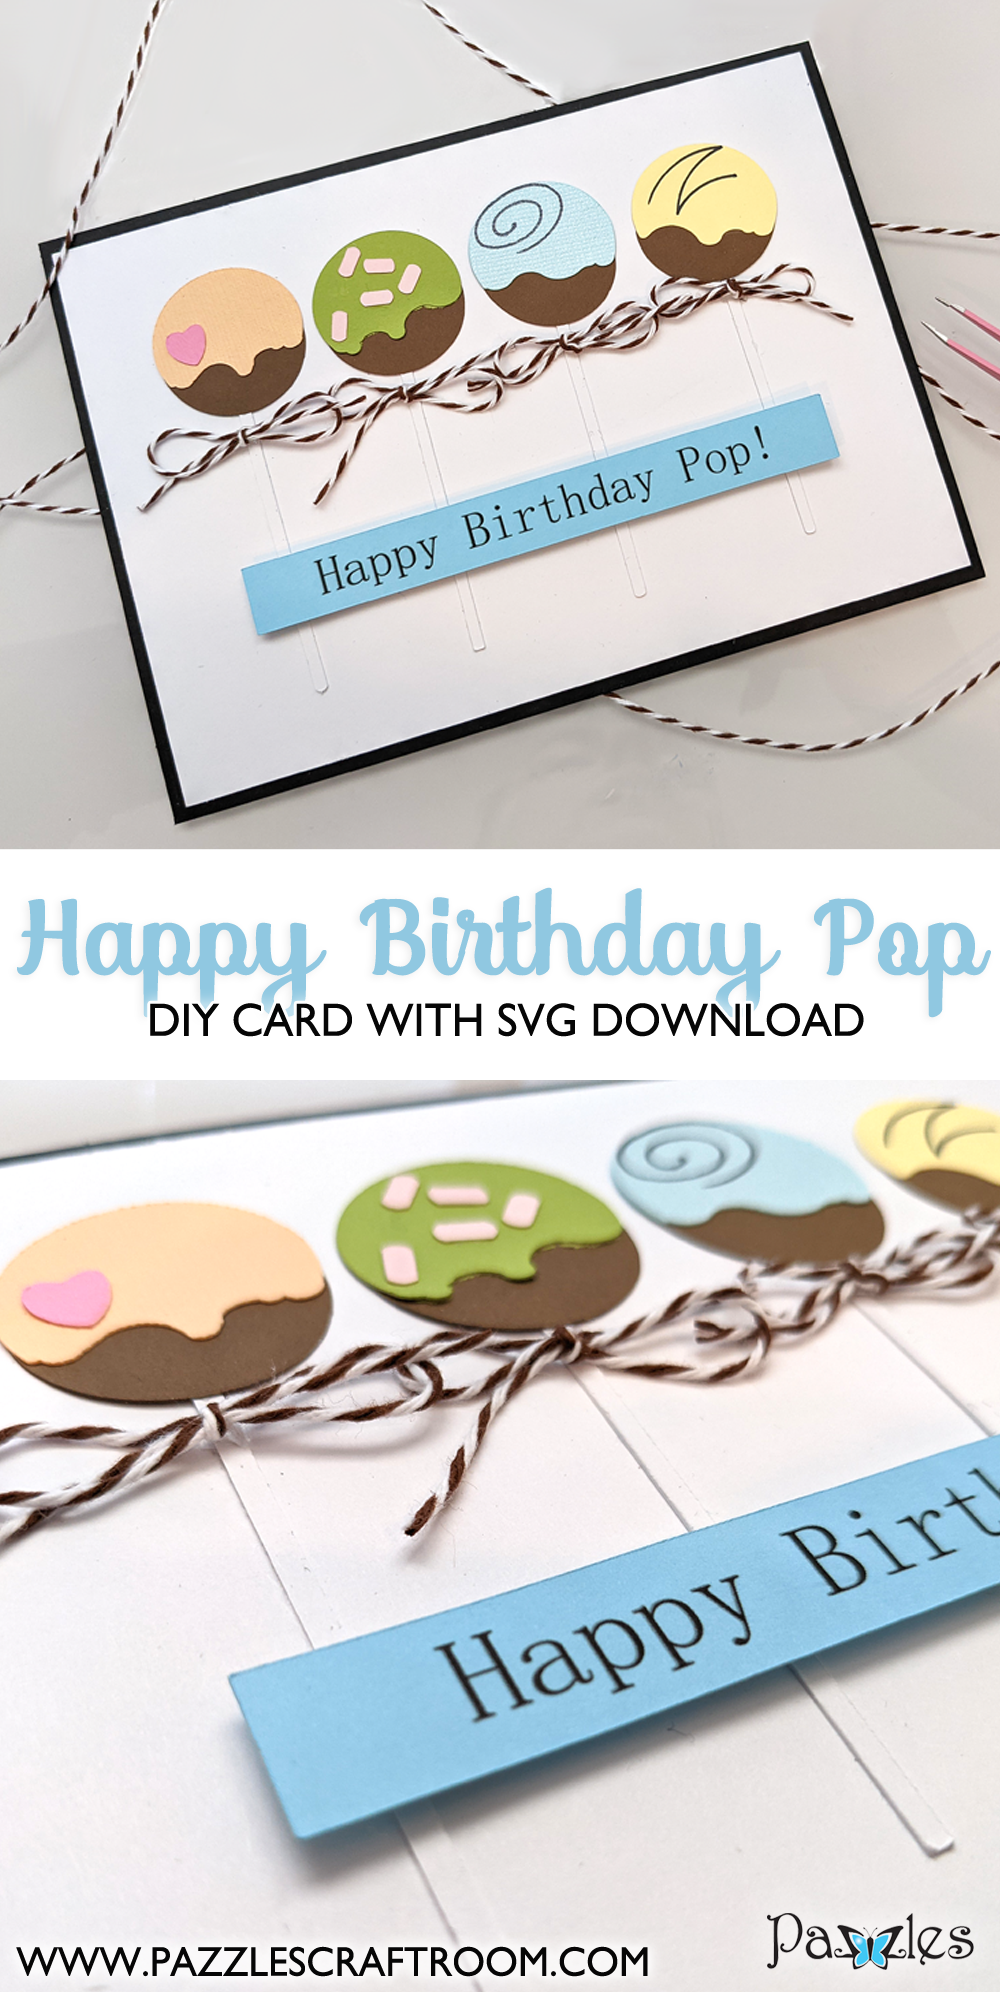 Pazzles DIY Happy Birthday Pop Card with instant SVG download. Instant SVG download compatible with all major electronic cutters including Pazzles Inspiration, Cricut, and Silhouette Cameo. Design by Monica Martinez.